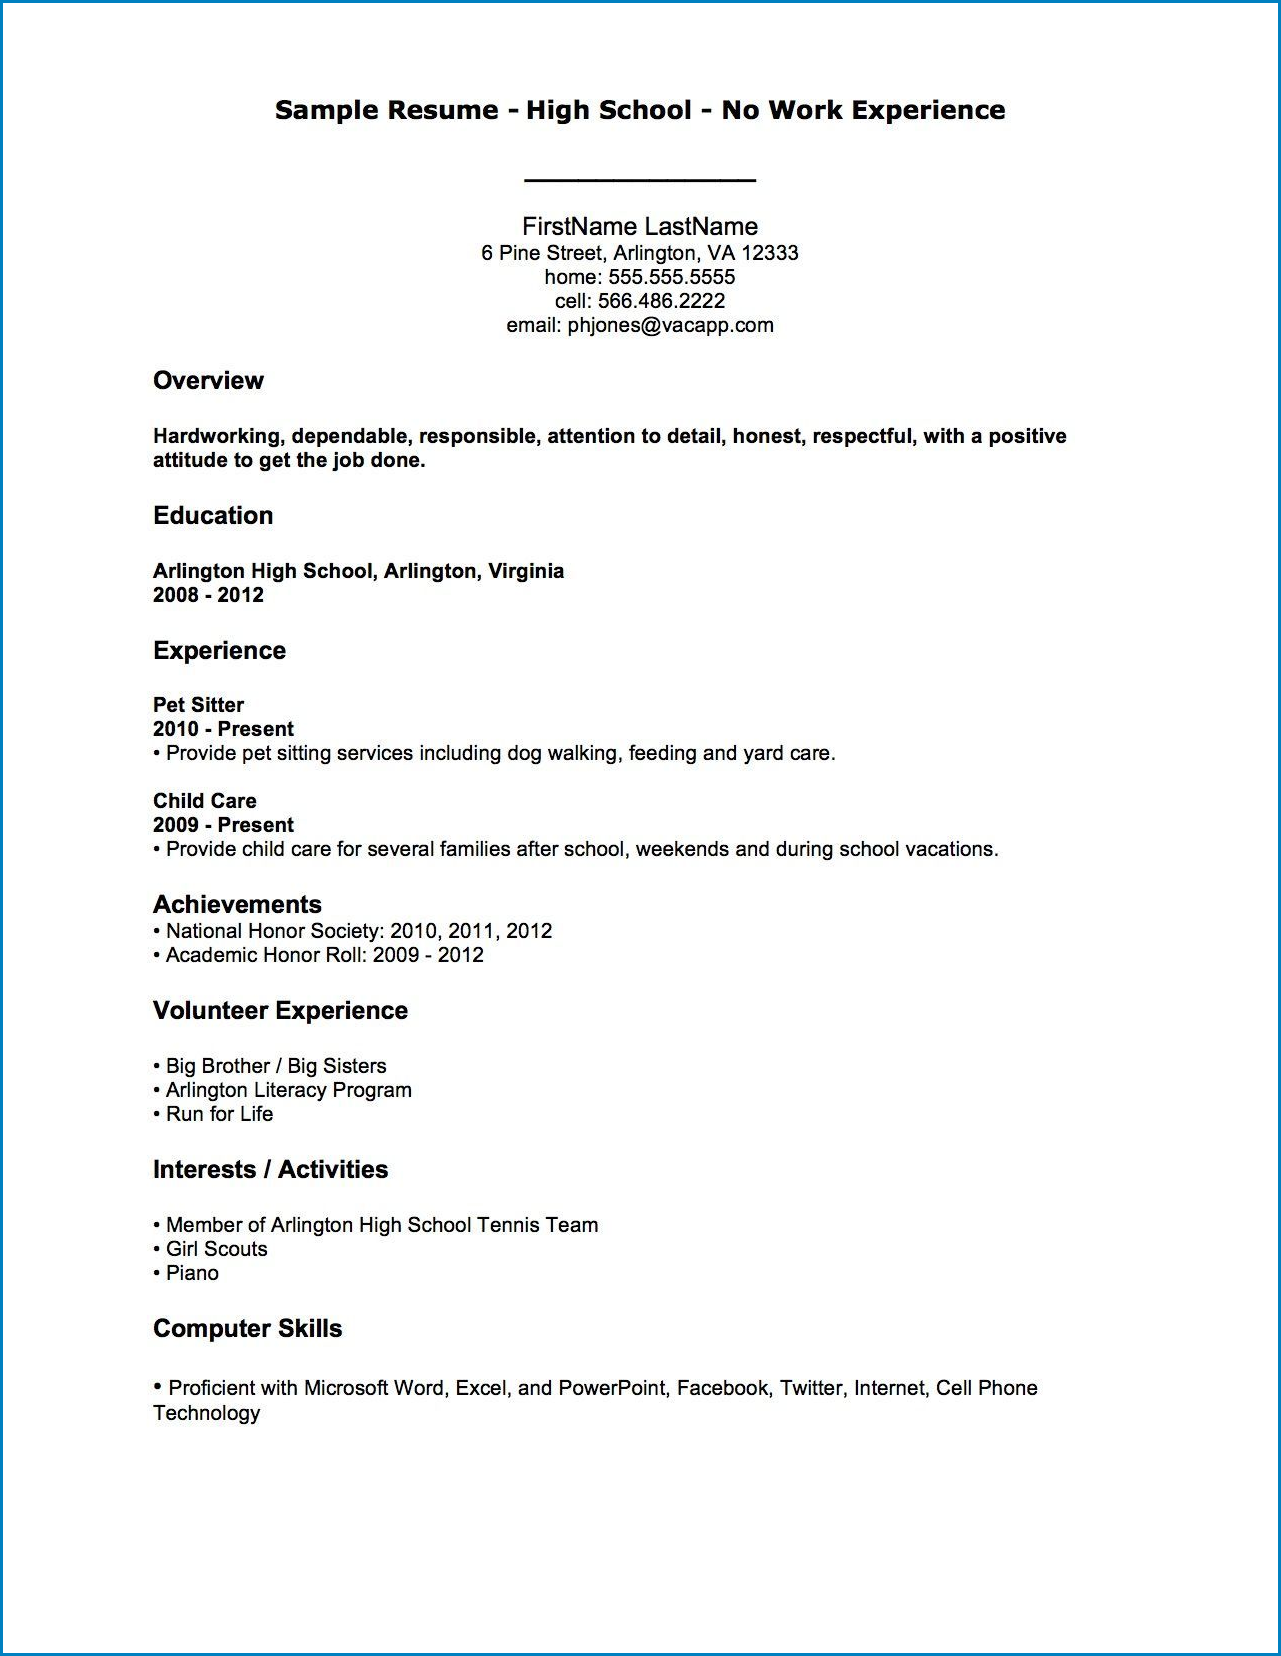 Example of Resume With No Work Experience Template